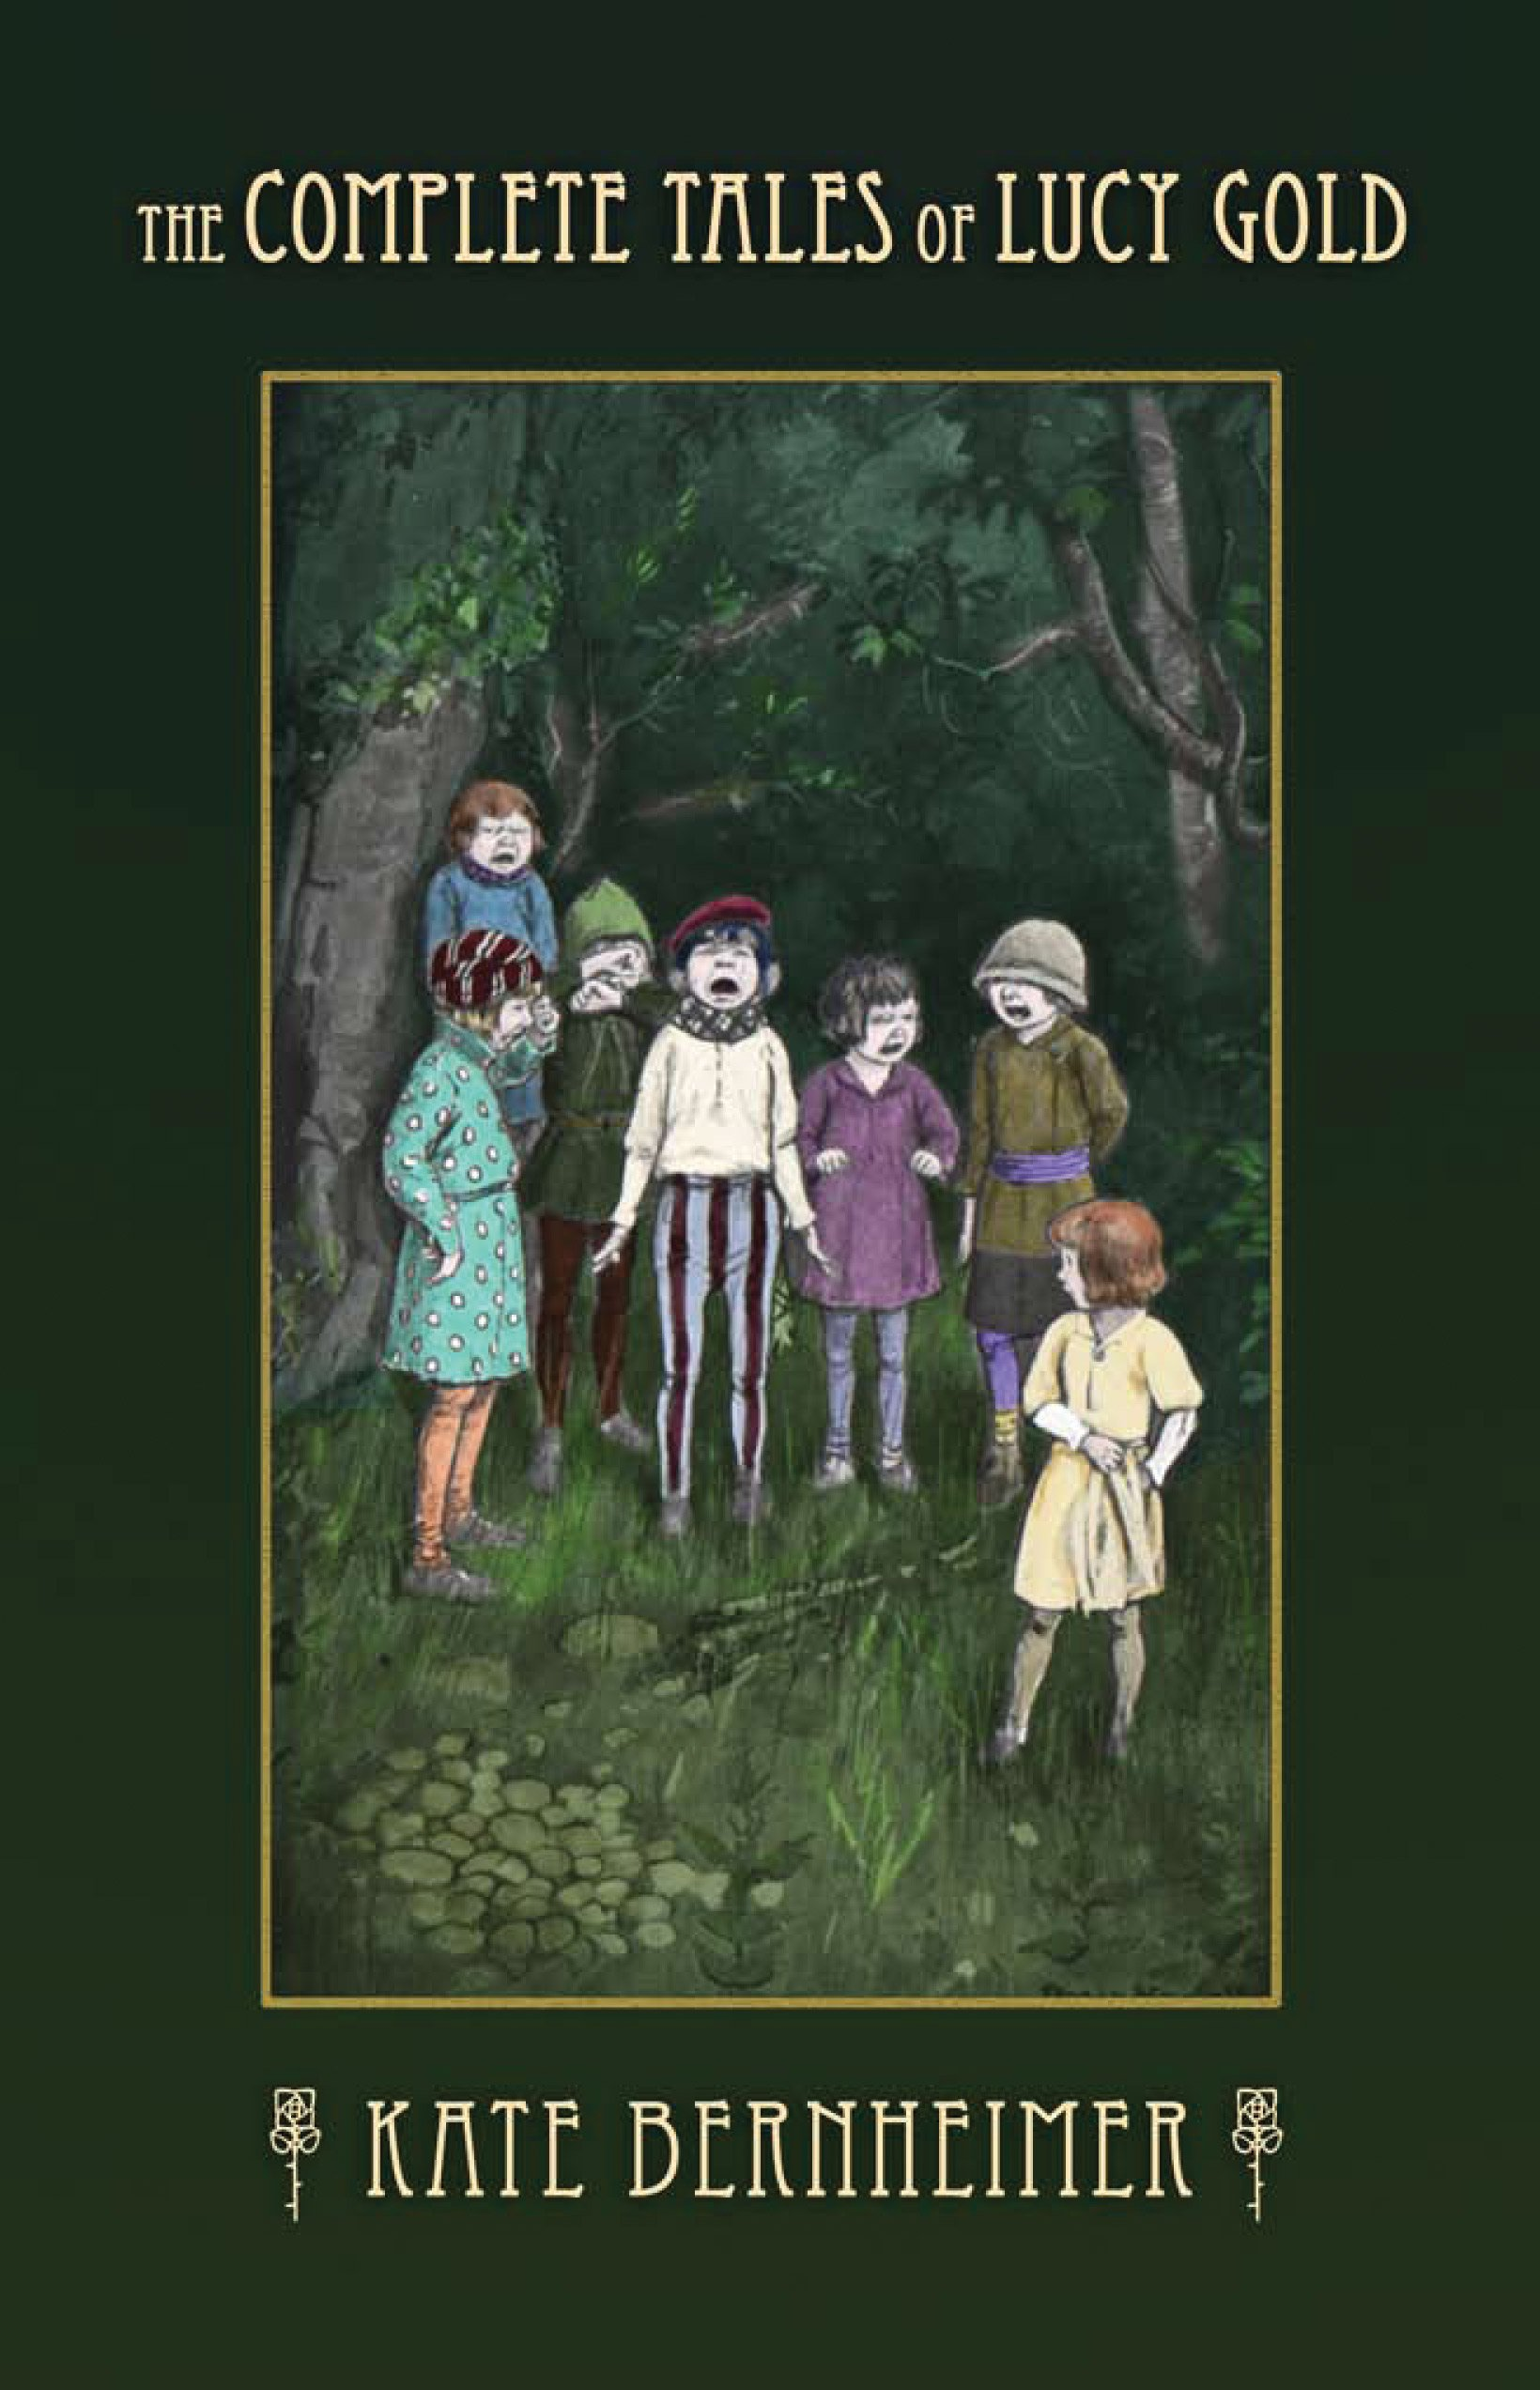 Download The Complete Tales of Lucy Gold ePub fb2 book